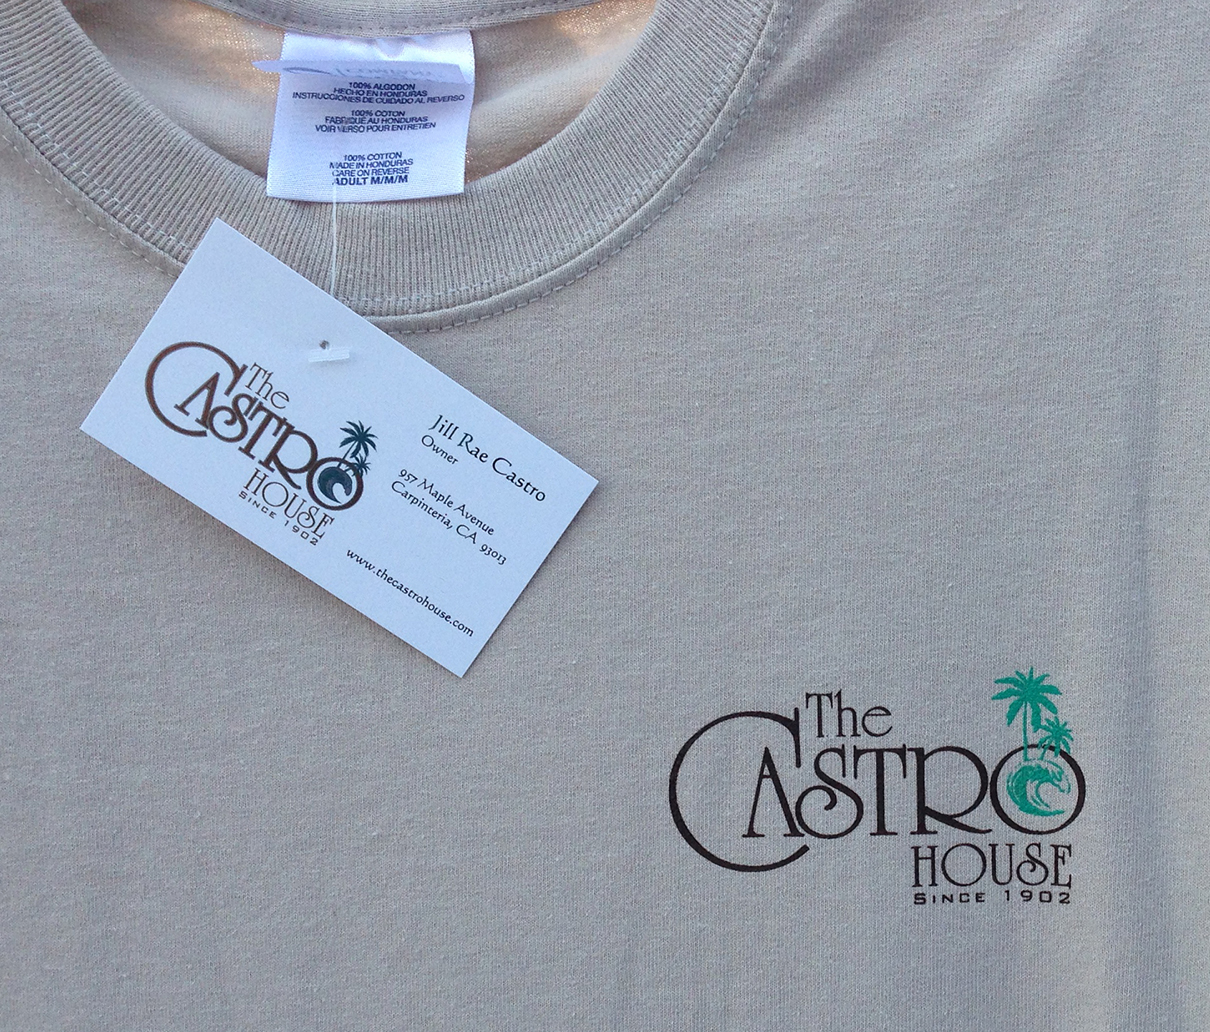 The Castro House Shirts